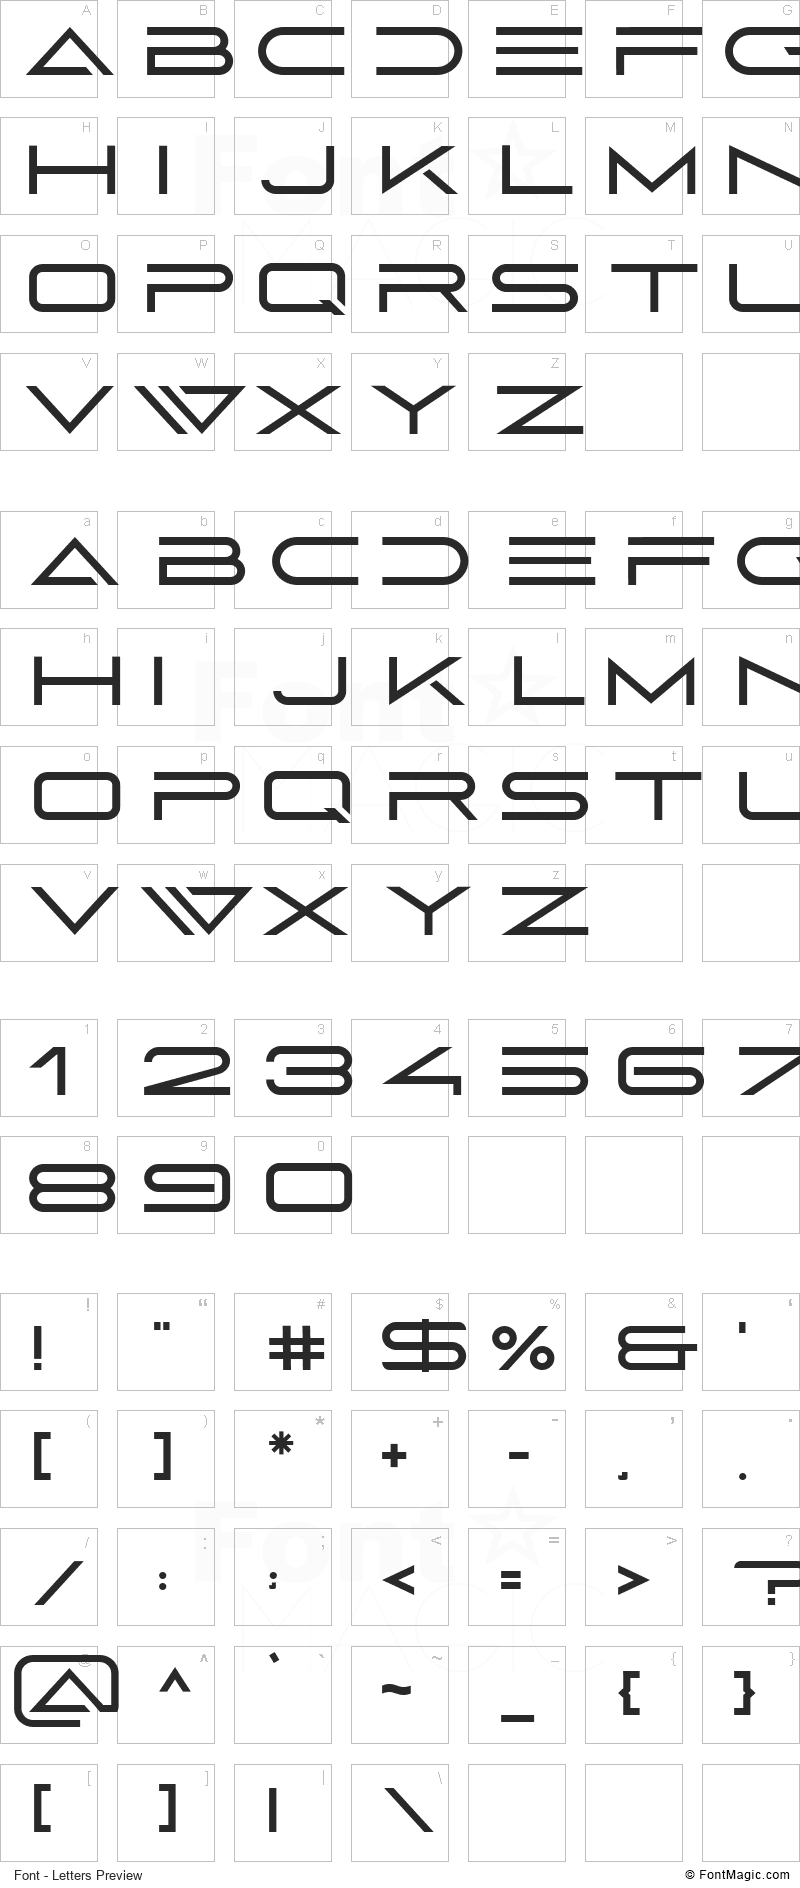 Abnes Font - All Latters Preview Chart